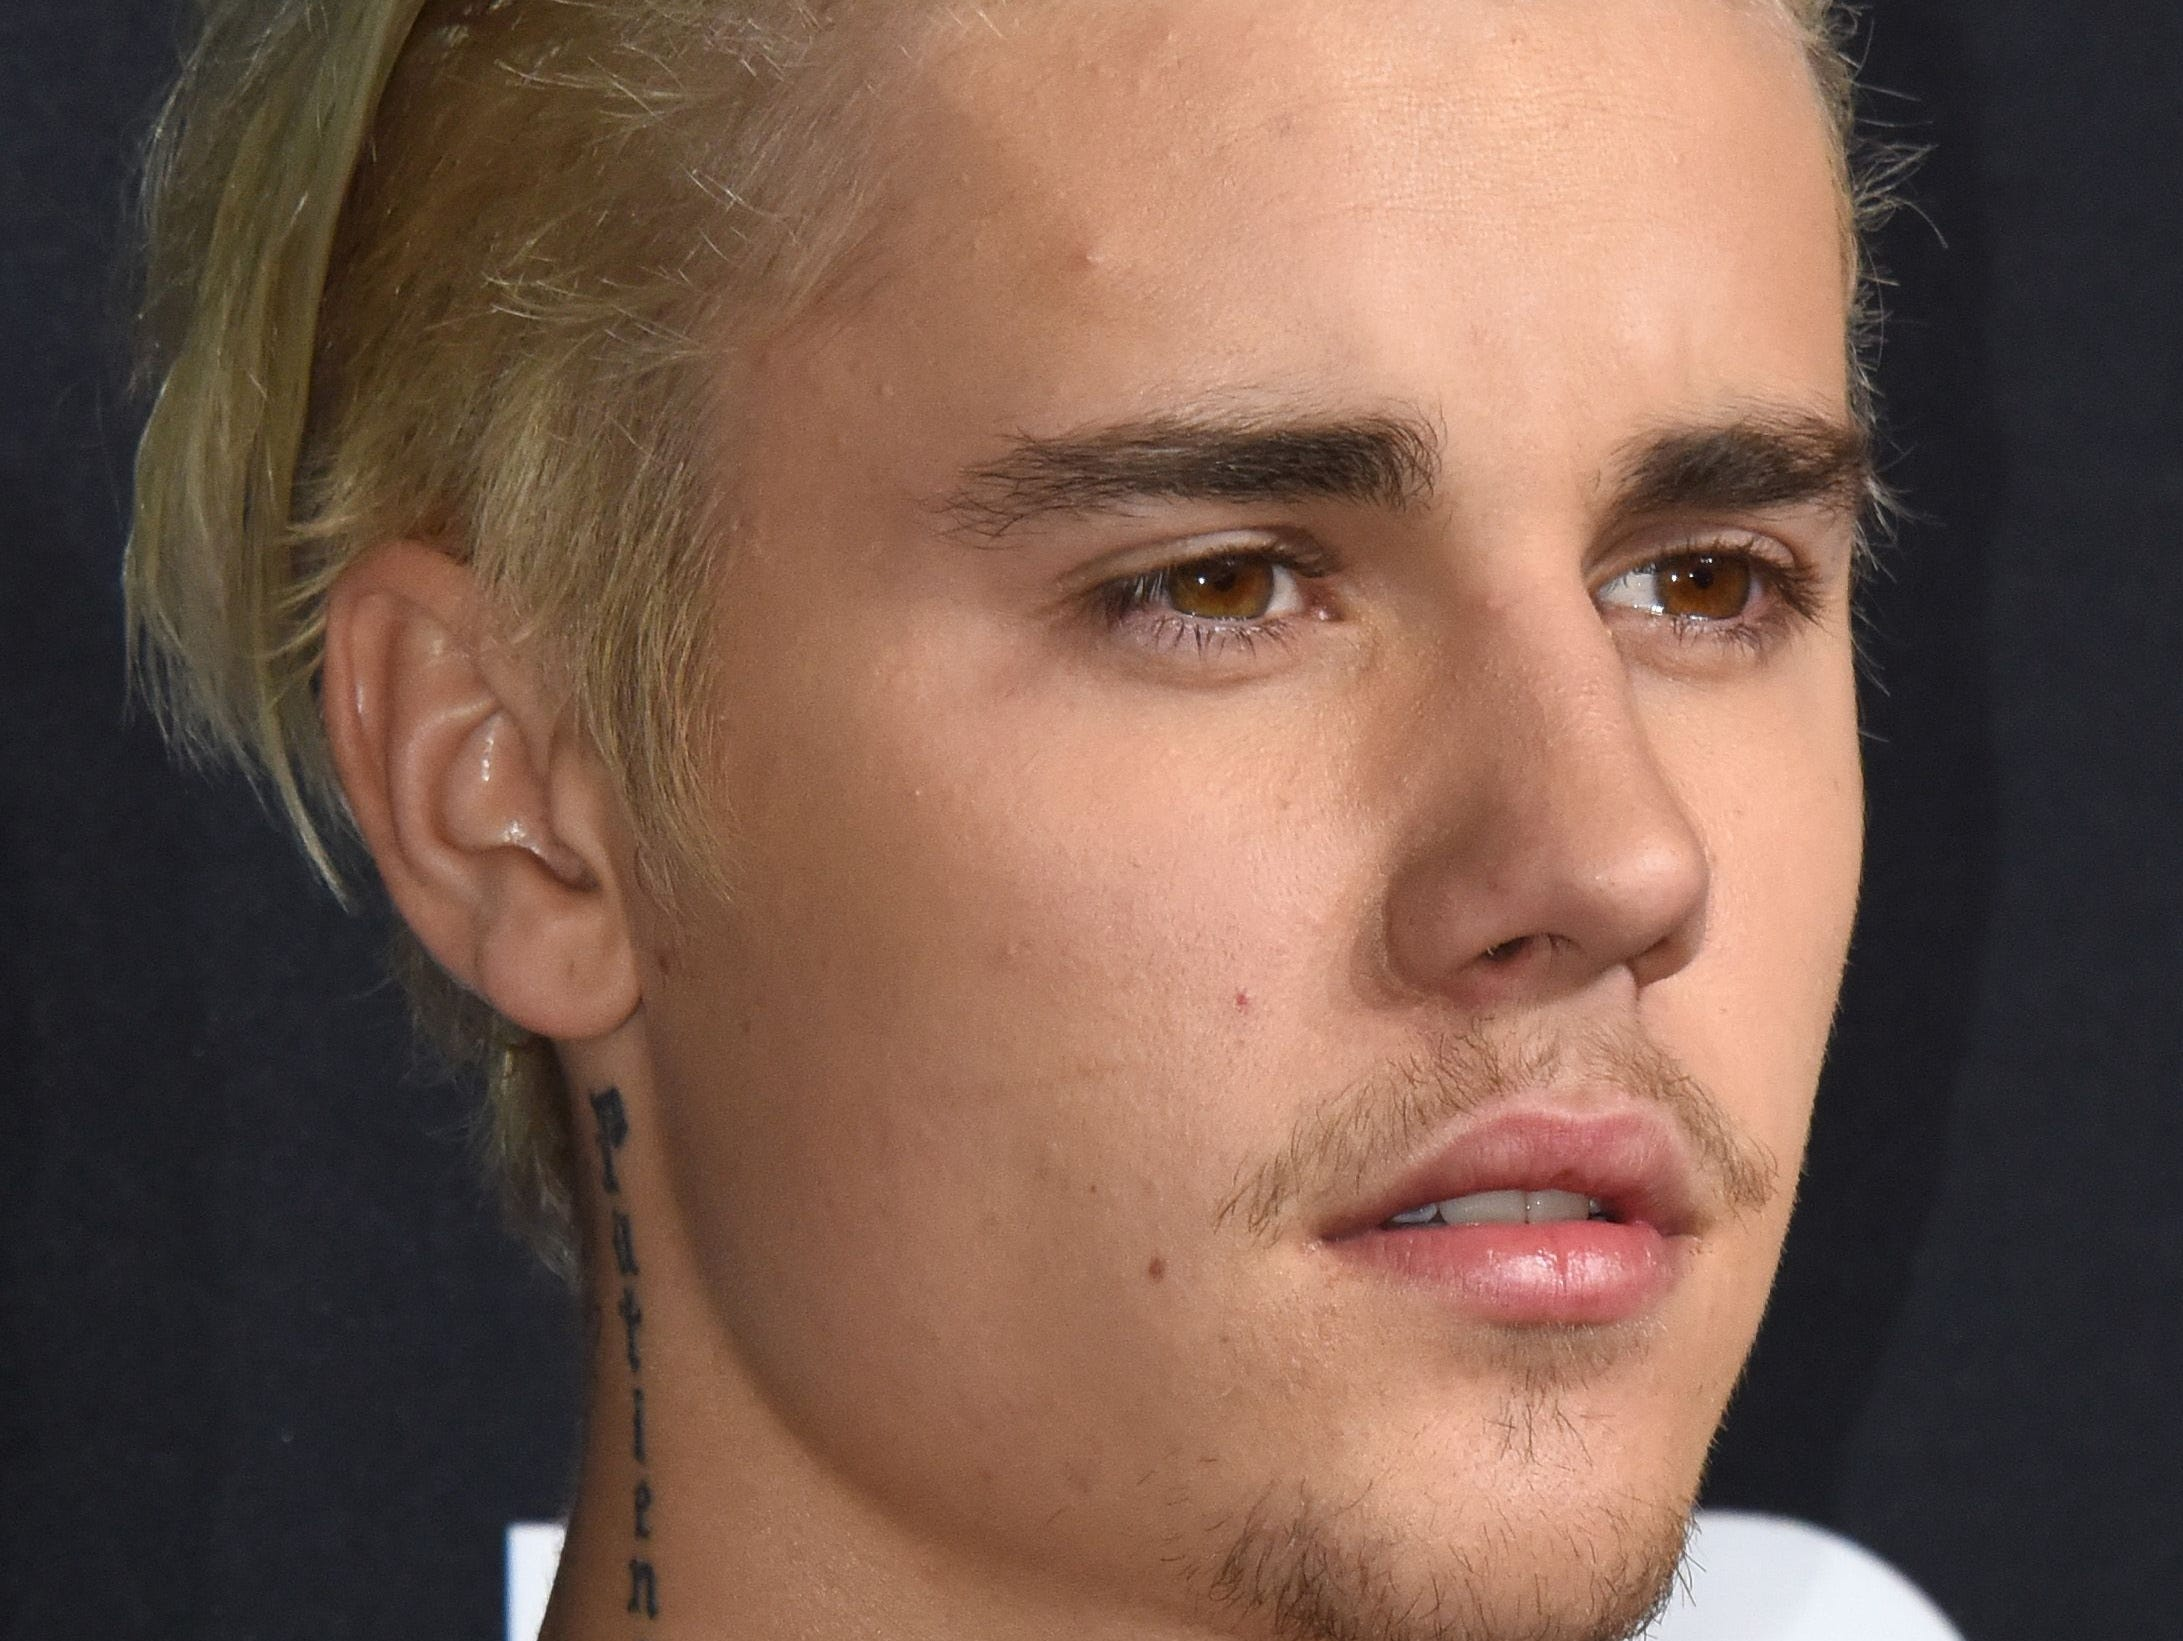 (FILES) A file photo taken on Fenruary 10, 2016, show singer Justin Bieber attending the Yves Saint Laurent men's fall line at the Hollywood Palladium in Hollywood, California.